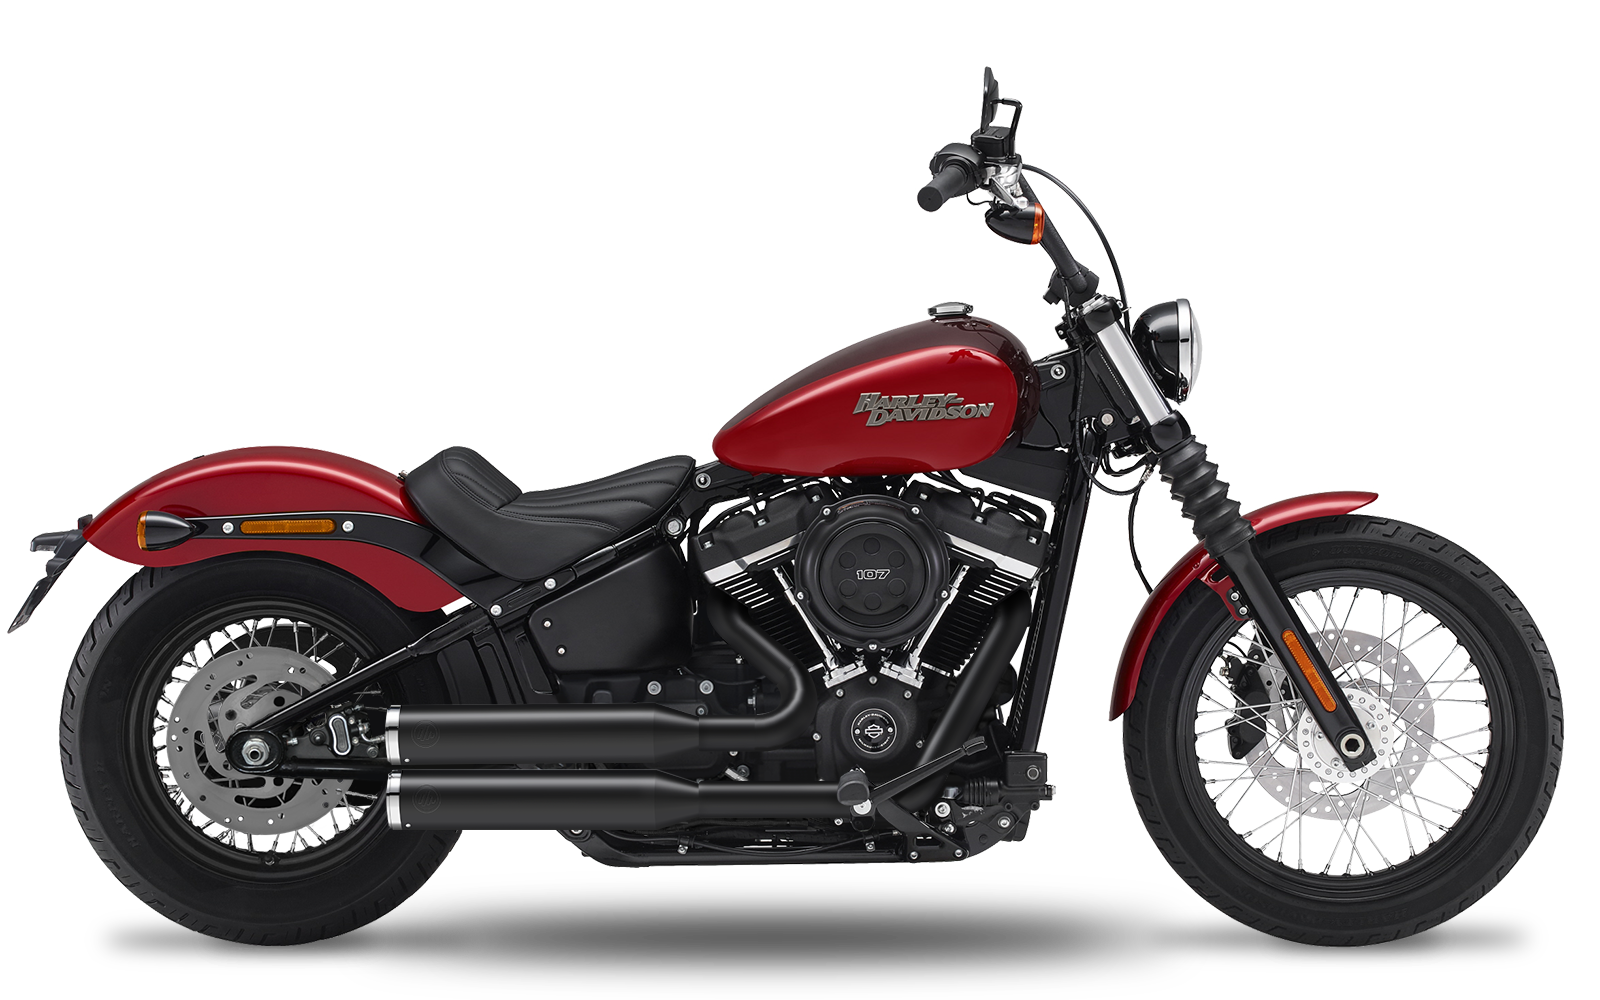 Softail - Street Bob - ME107 - 2018-2020 - Complete systems adjustable